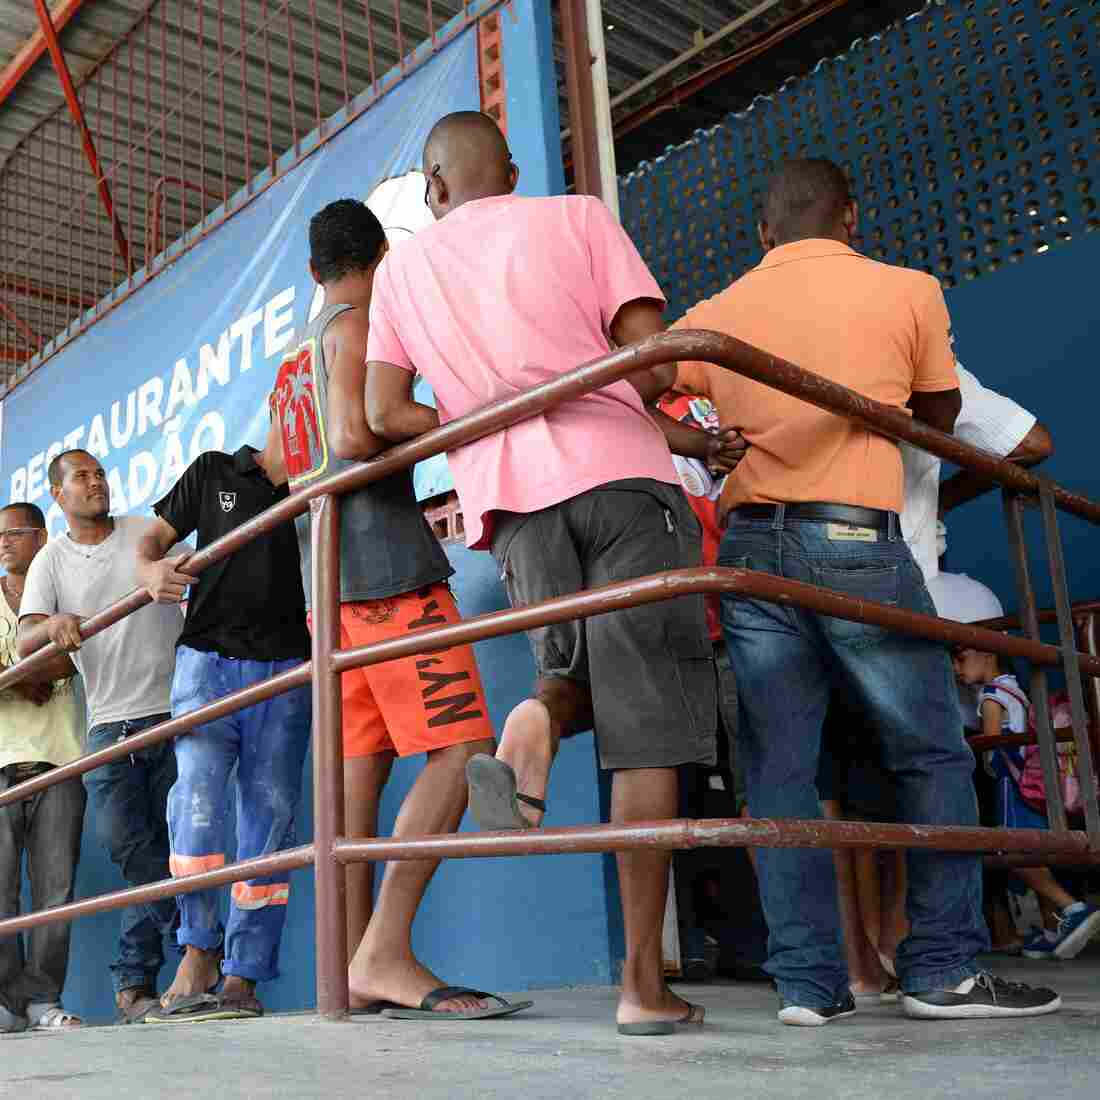 People, most of them unemployed, line up March 19 at a popular Itaborai, Brazil, restaurant where they can have lunch for about 30 cents. The Petrobras refinery and processing plant on the outskirts of town has been shut down; tens of thousands are now out of work in the area.